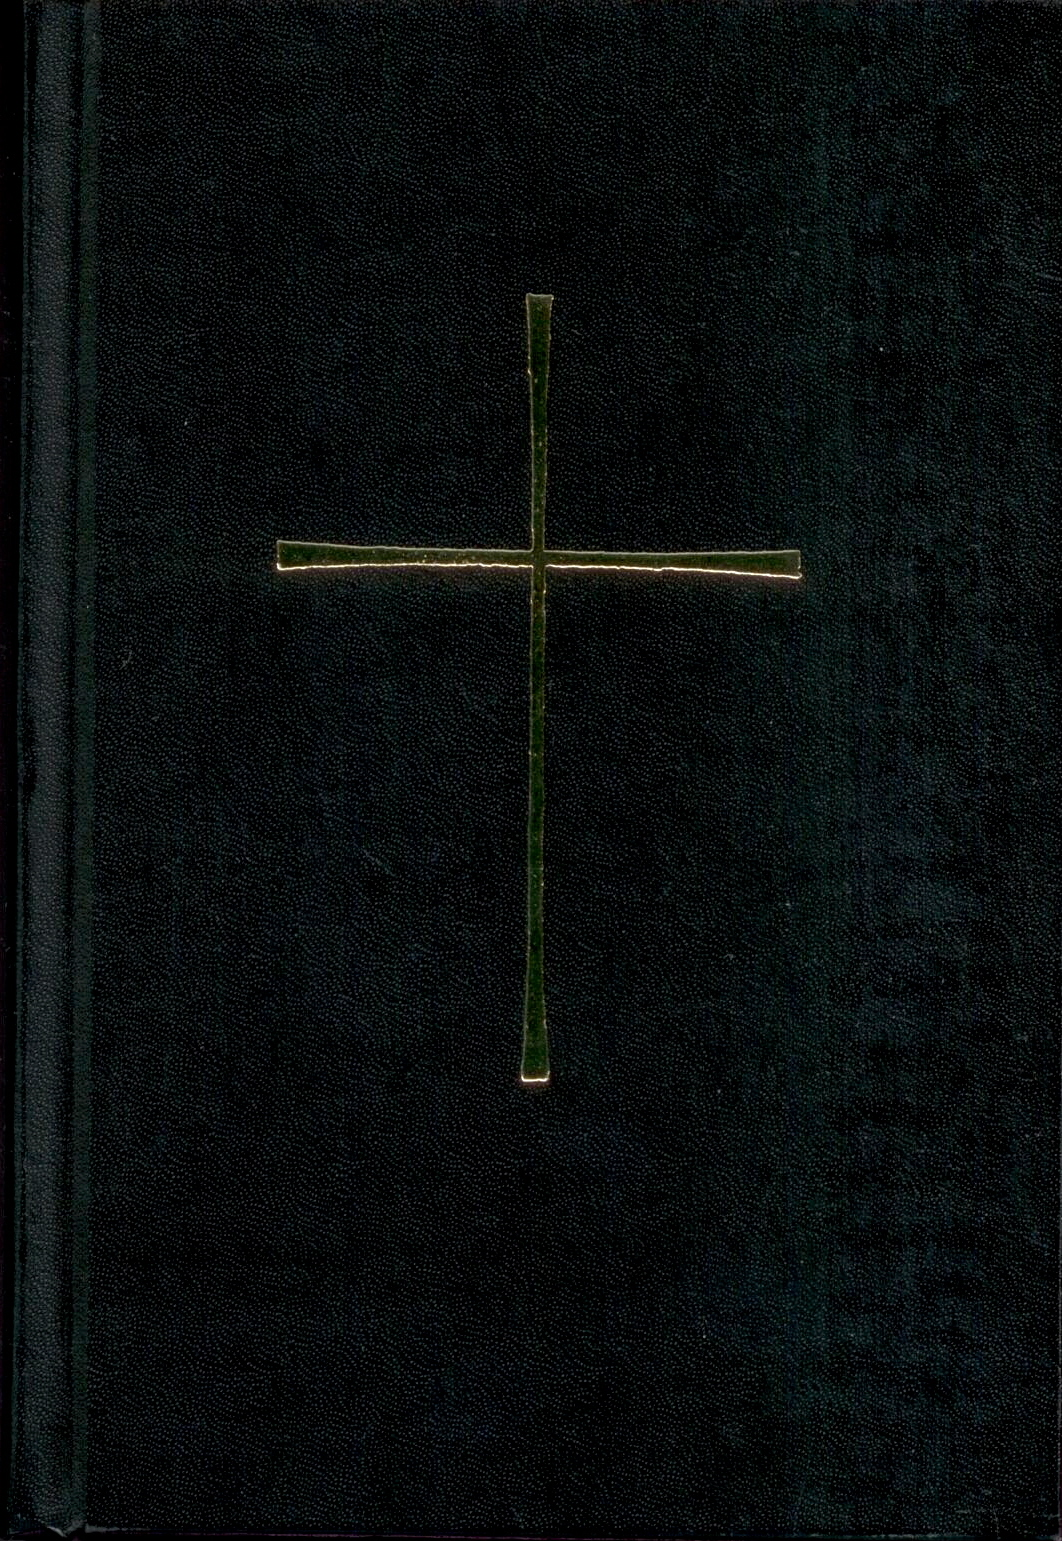 Book of Common Prayer published by Seabury Press